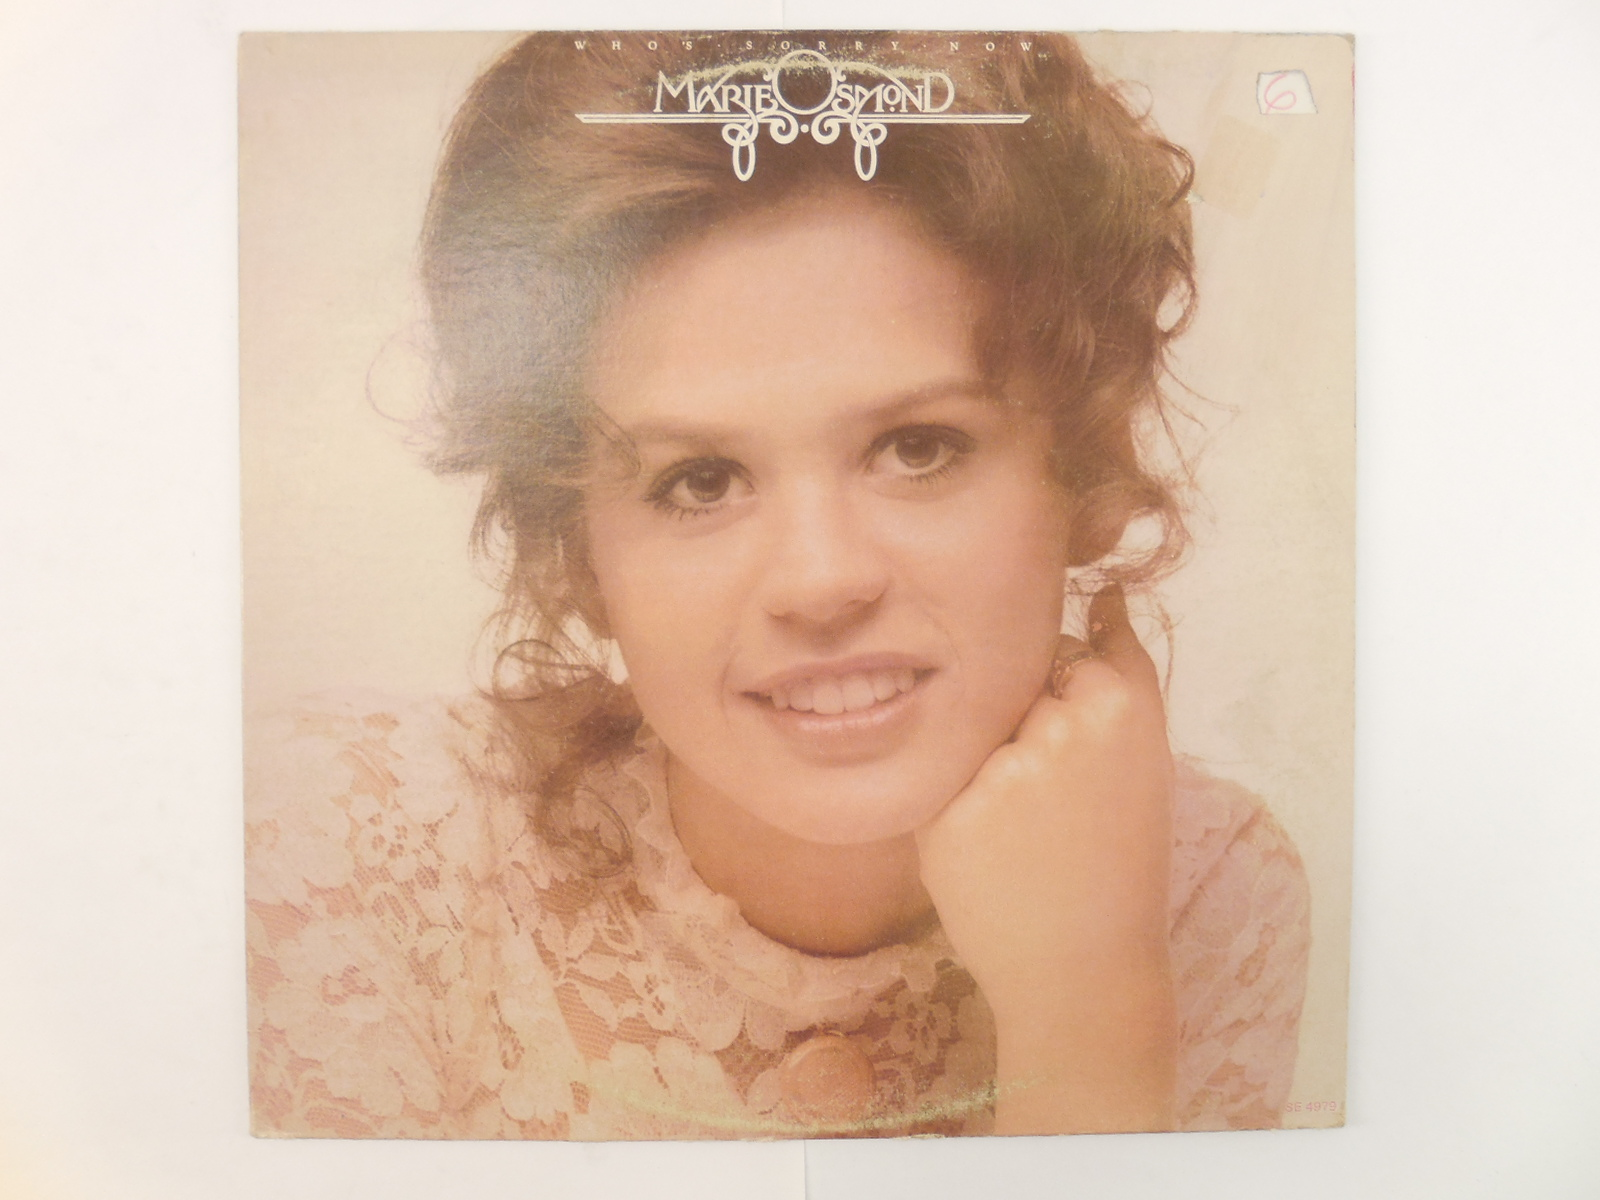 Пластинка Marie Osmond Whos sorry now - Pic n 261203